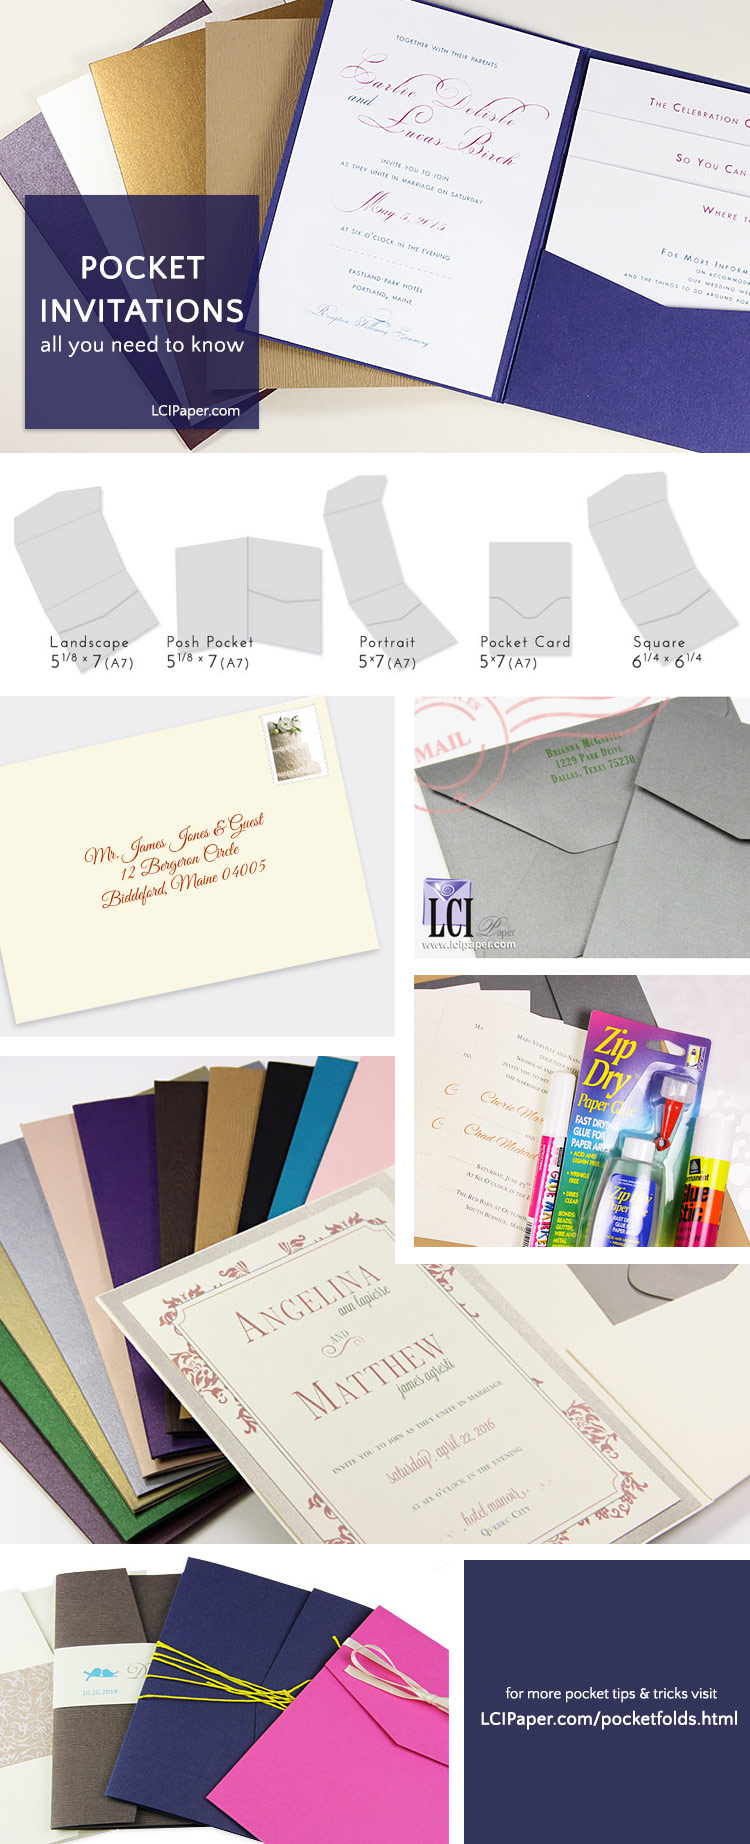 Make your own pocket invitation tips & tricks collage. Links to helpful articles on assembling, mailing, addressing, design.